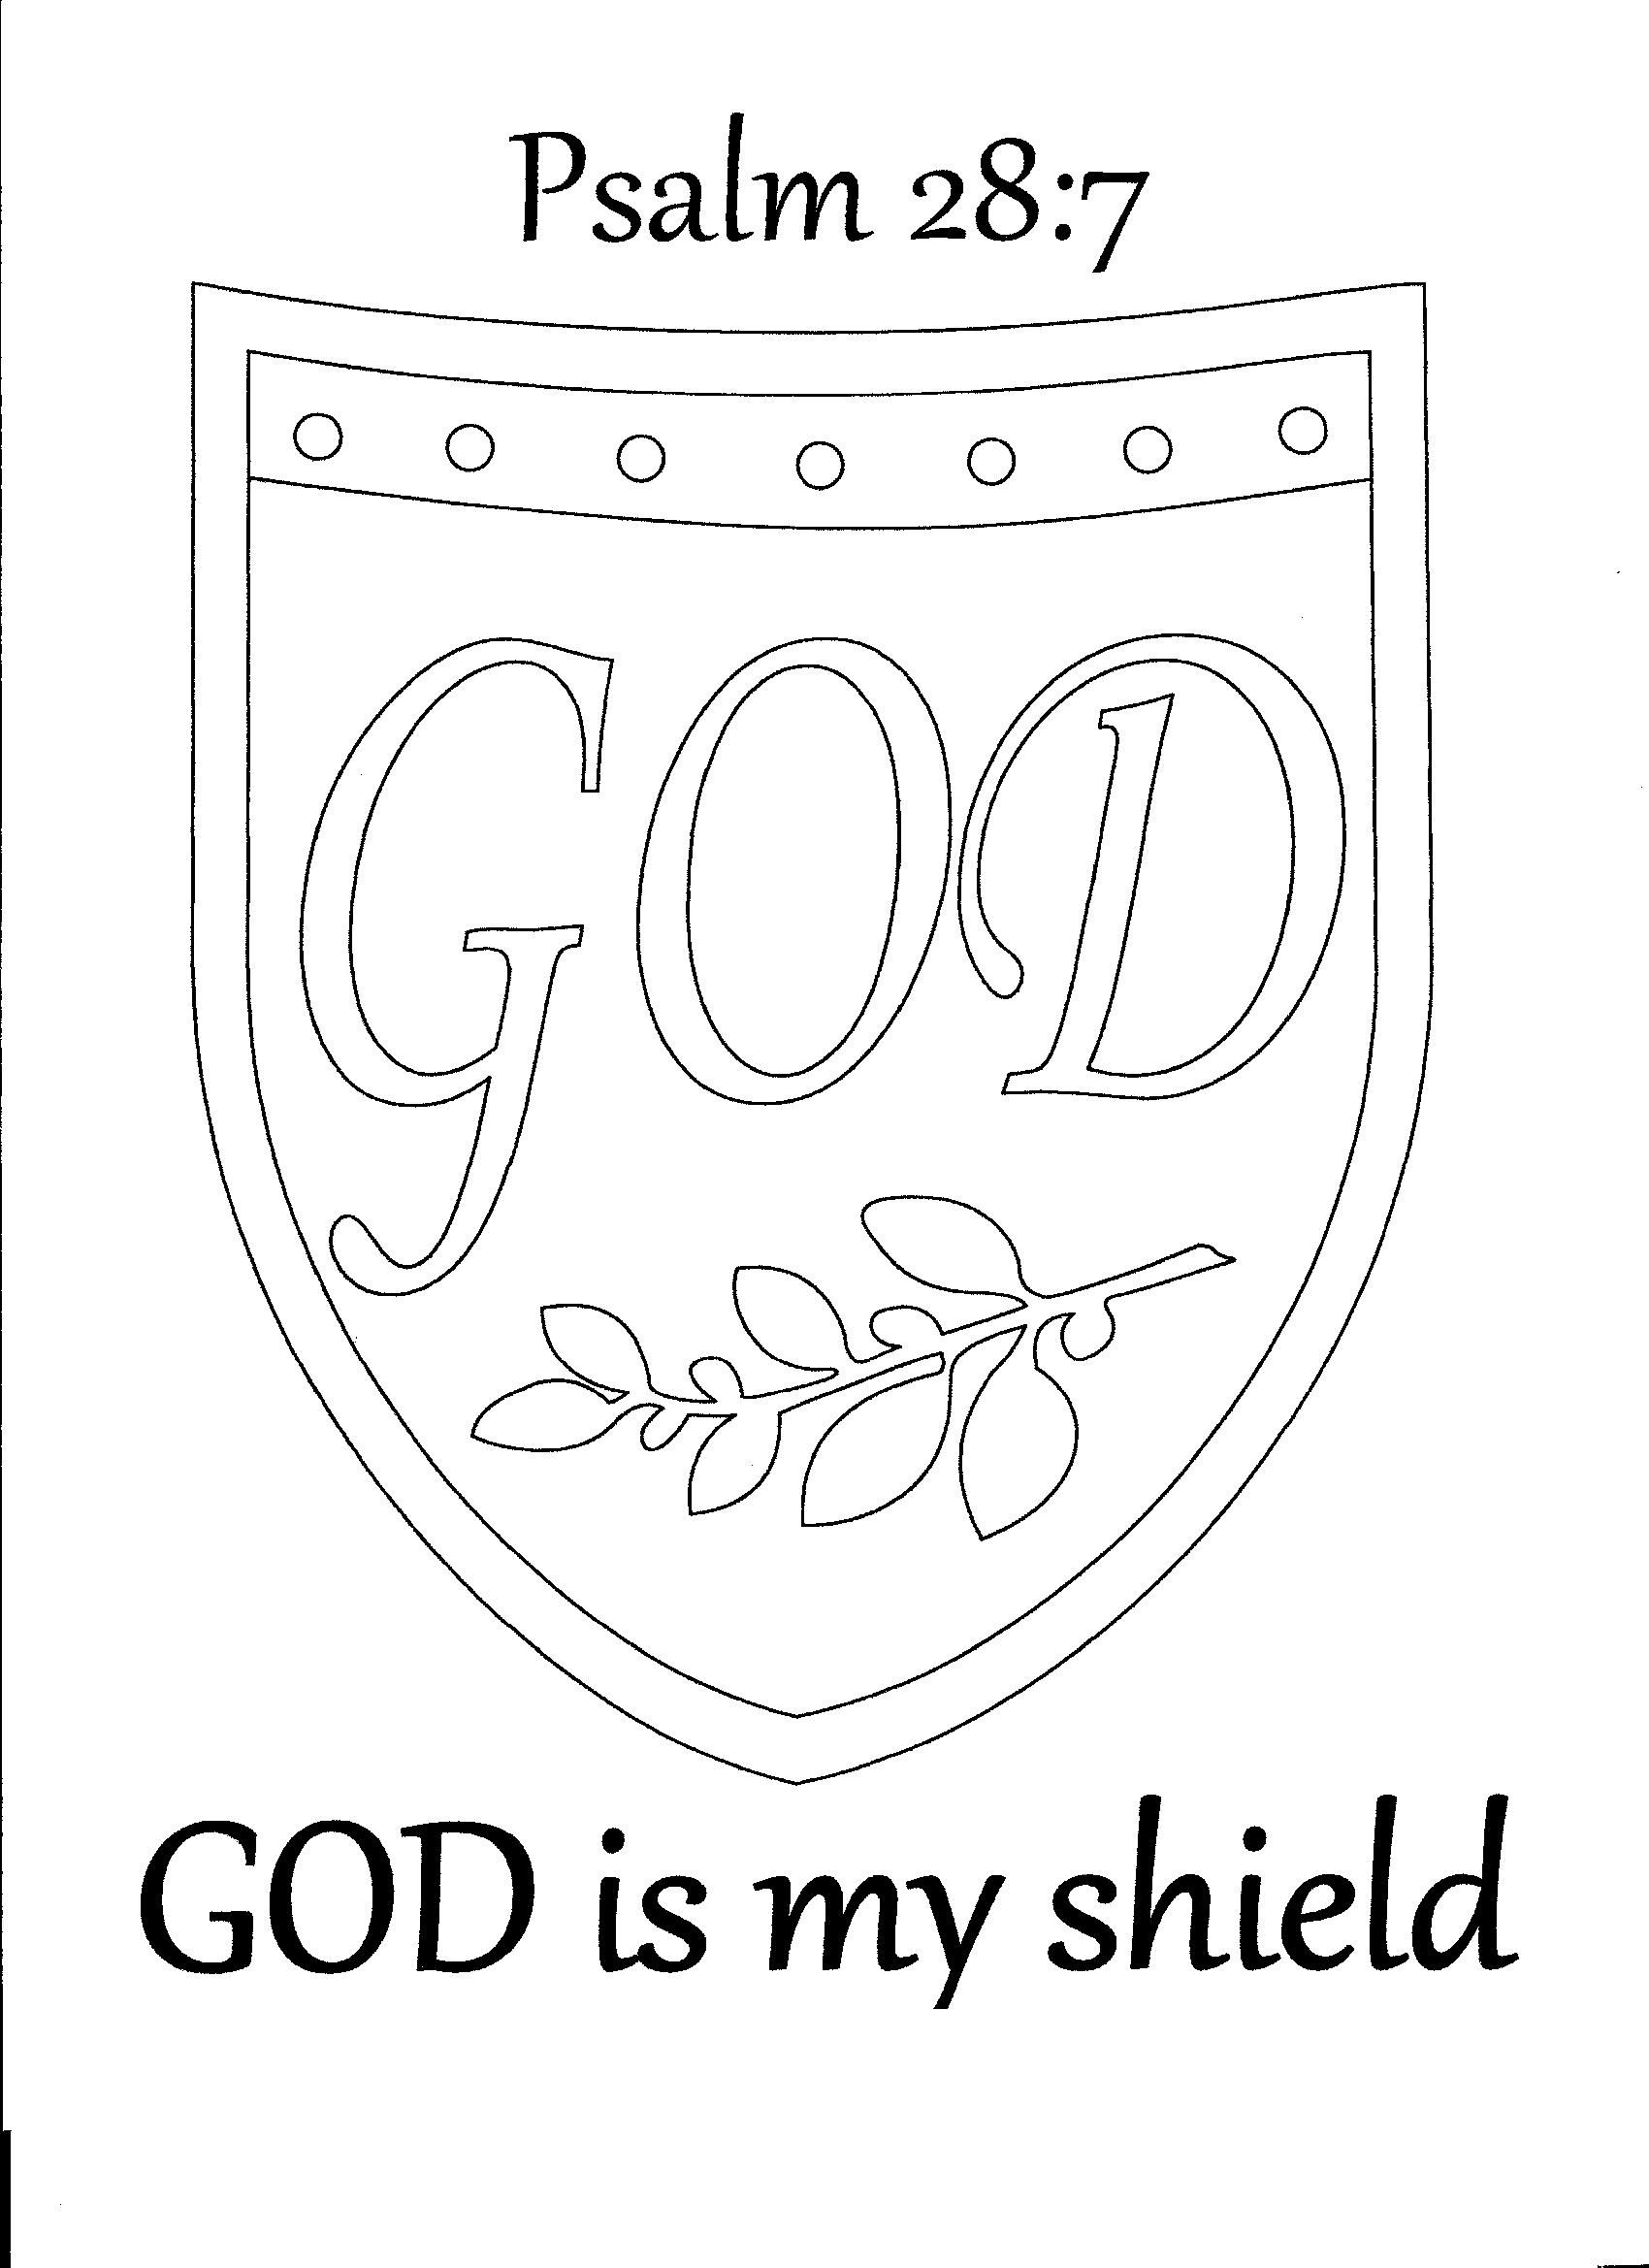 God Is My Shield Psalm 28:7 Coloring Page | Sunday School